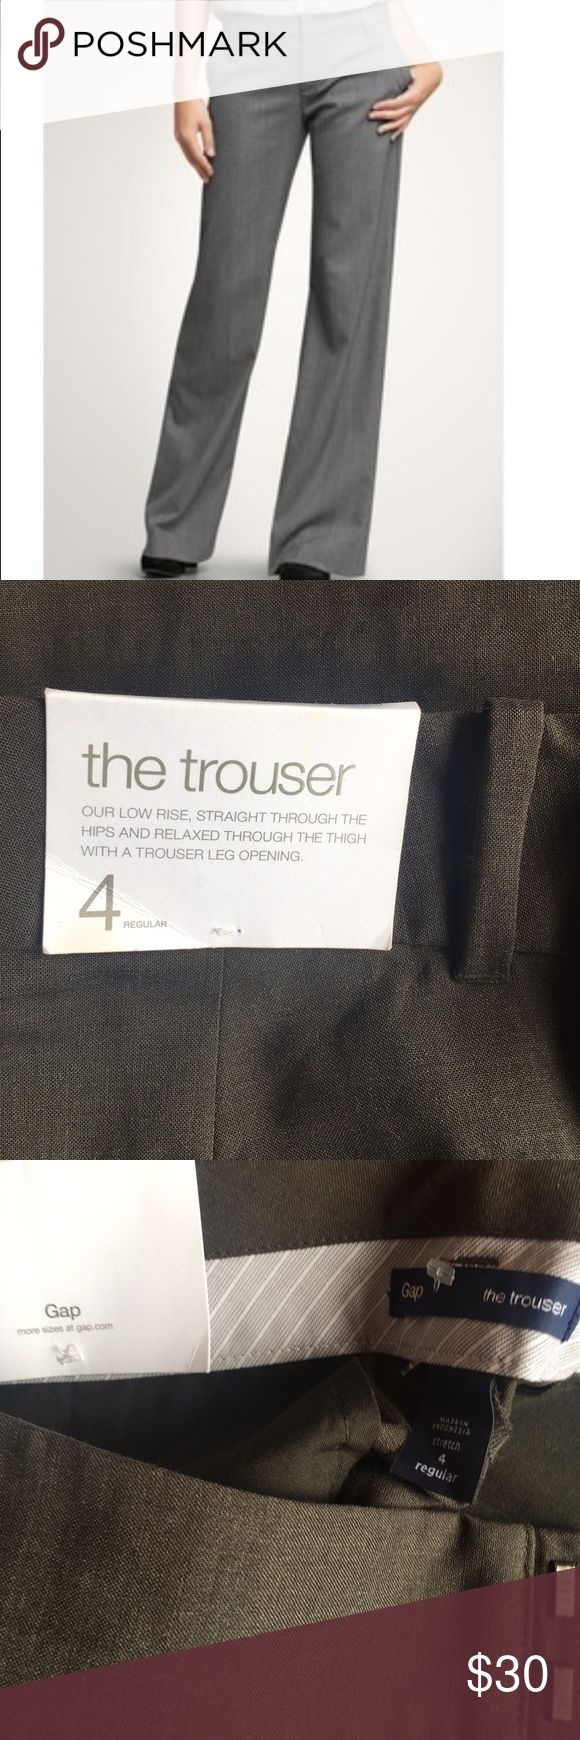 NWT Gap Trousers Beautiful Gap Trousers, 4R I'd describe the color as dark charcoal grey. Low rise, straight through the hips and trouser leg opening, which is say was wide leg. Gives a lean leg appearance. Looks great with heels GAP Pants